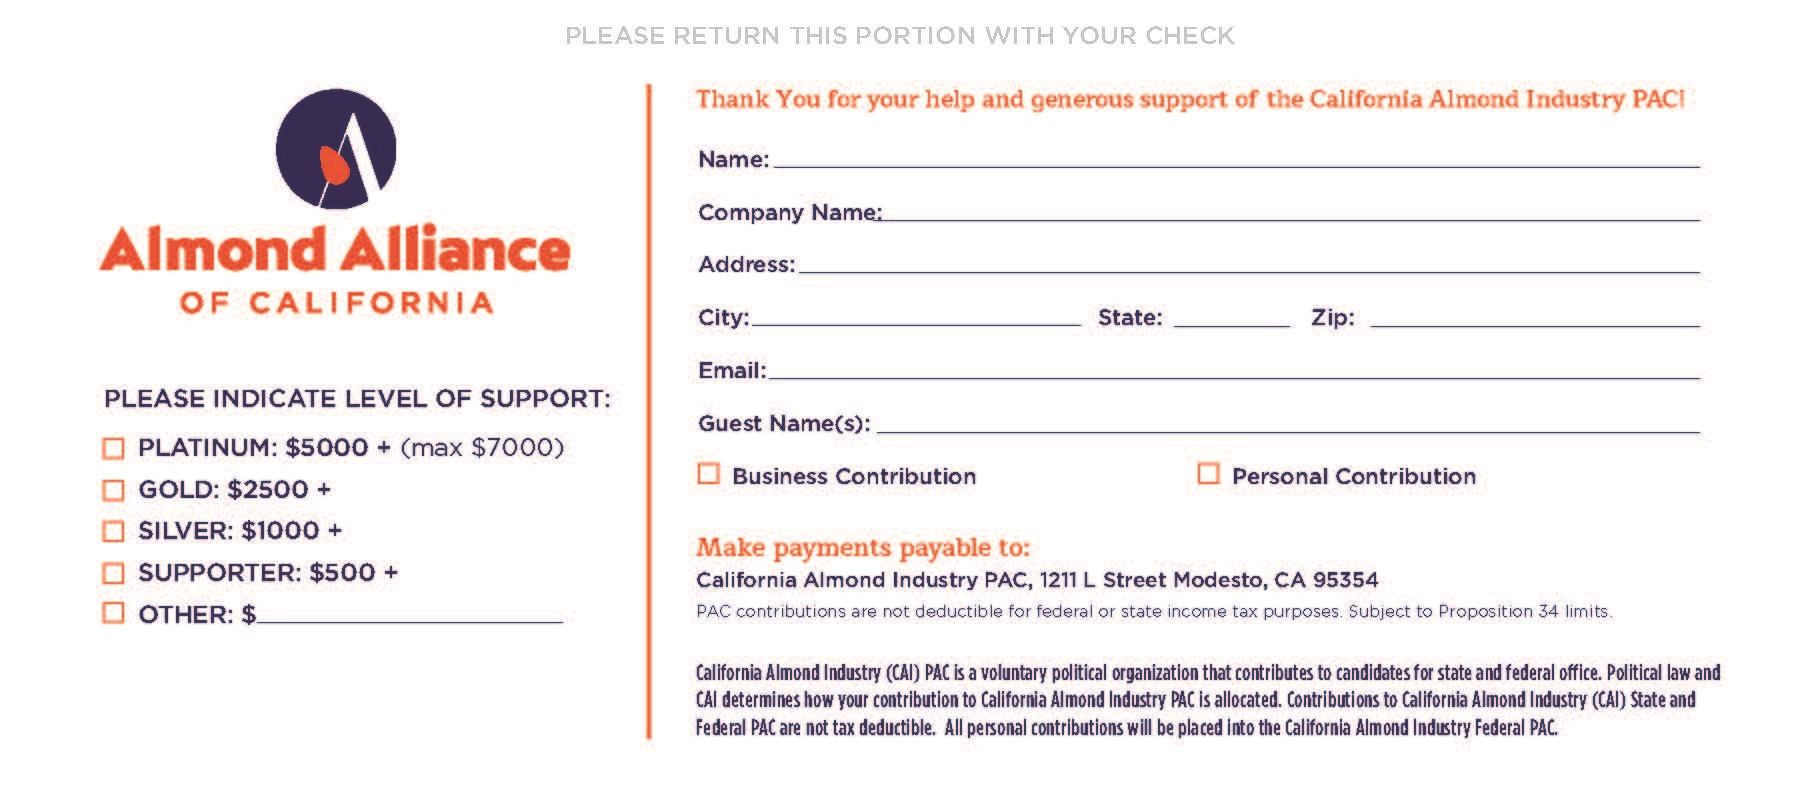 ALMONDALL-007_Almond Alliance of CA_PAC Contribution Form